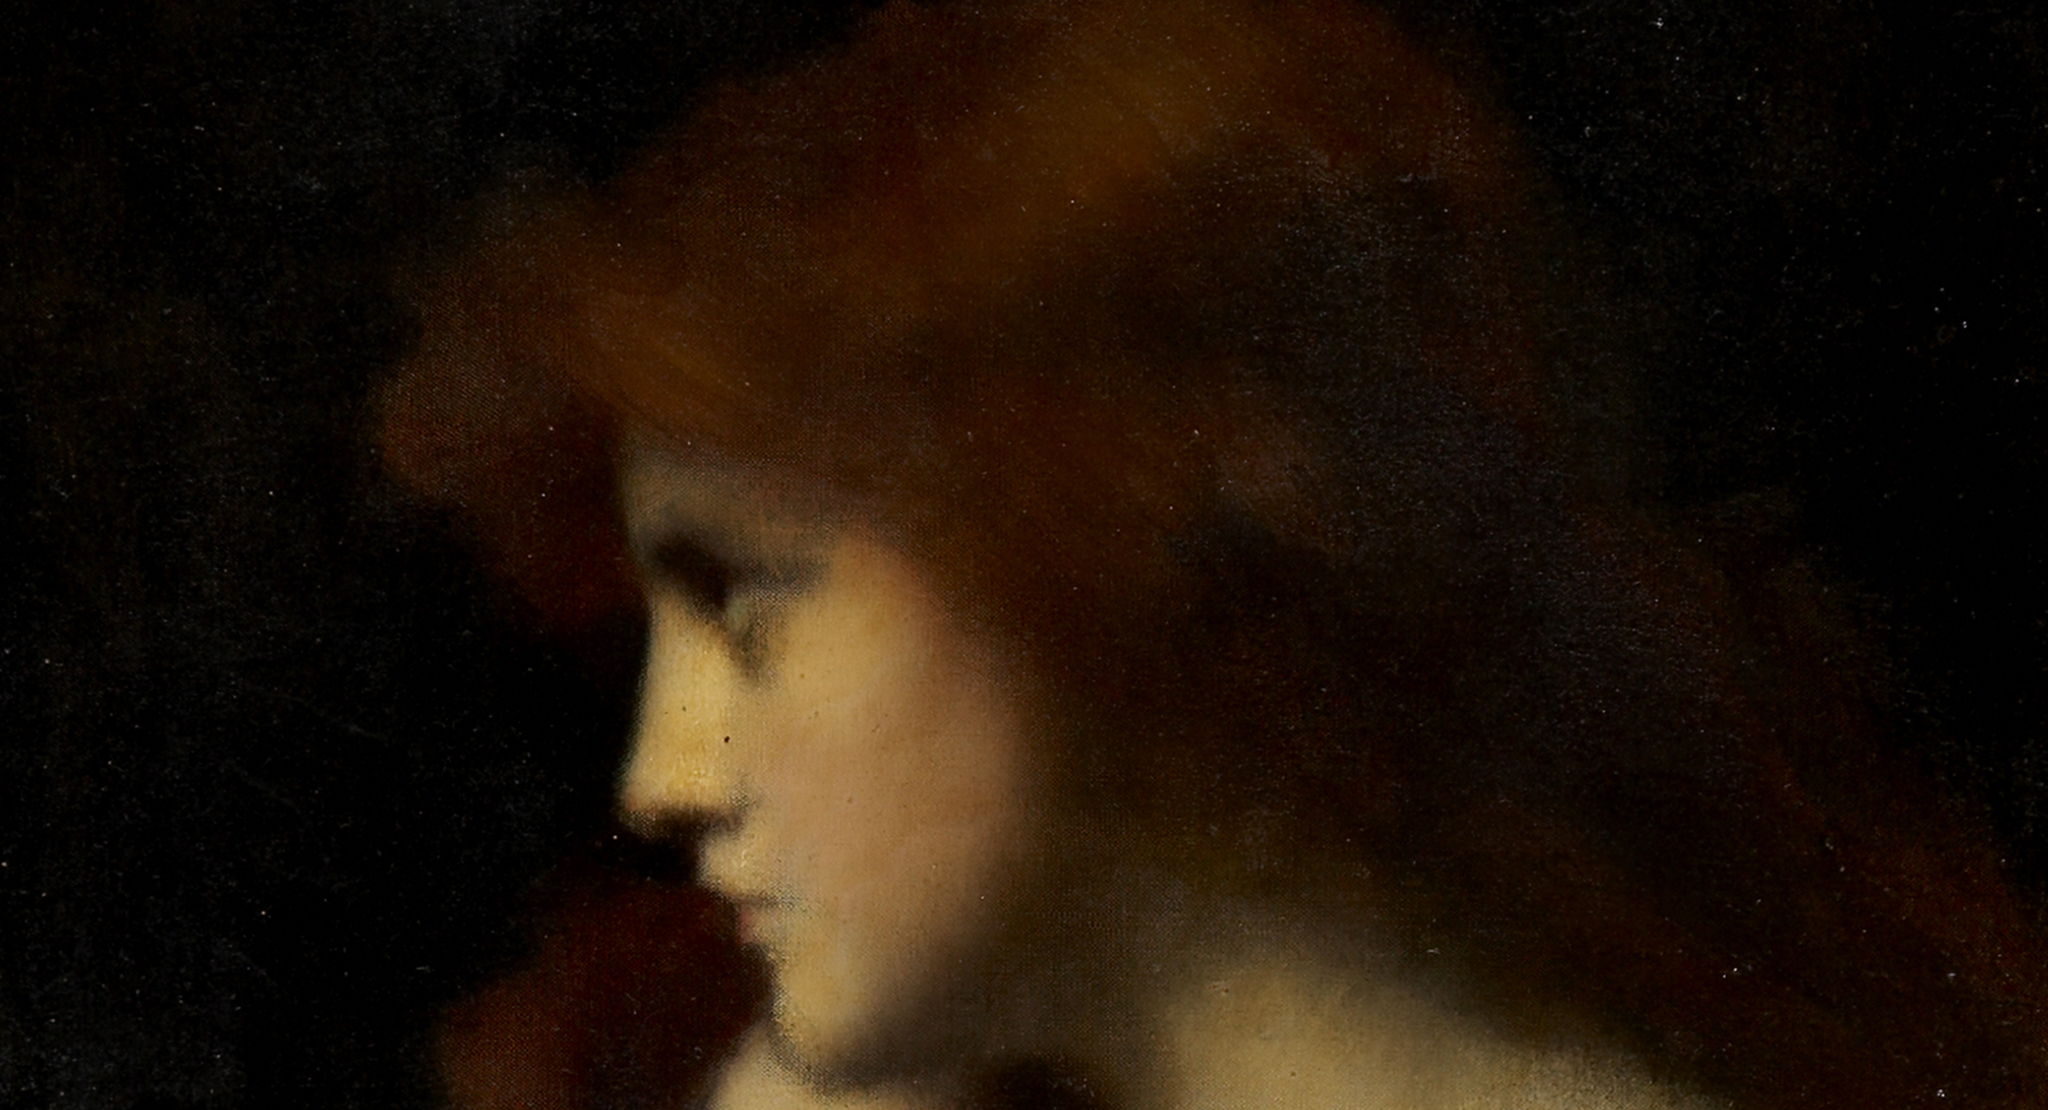 The Artist's Dream Exhibition Showcase: Jean-Jacques Henner's Contemplation